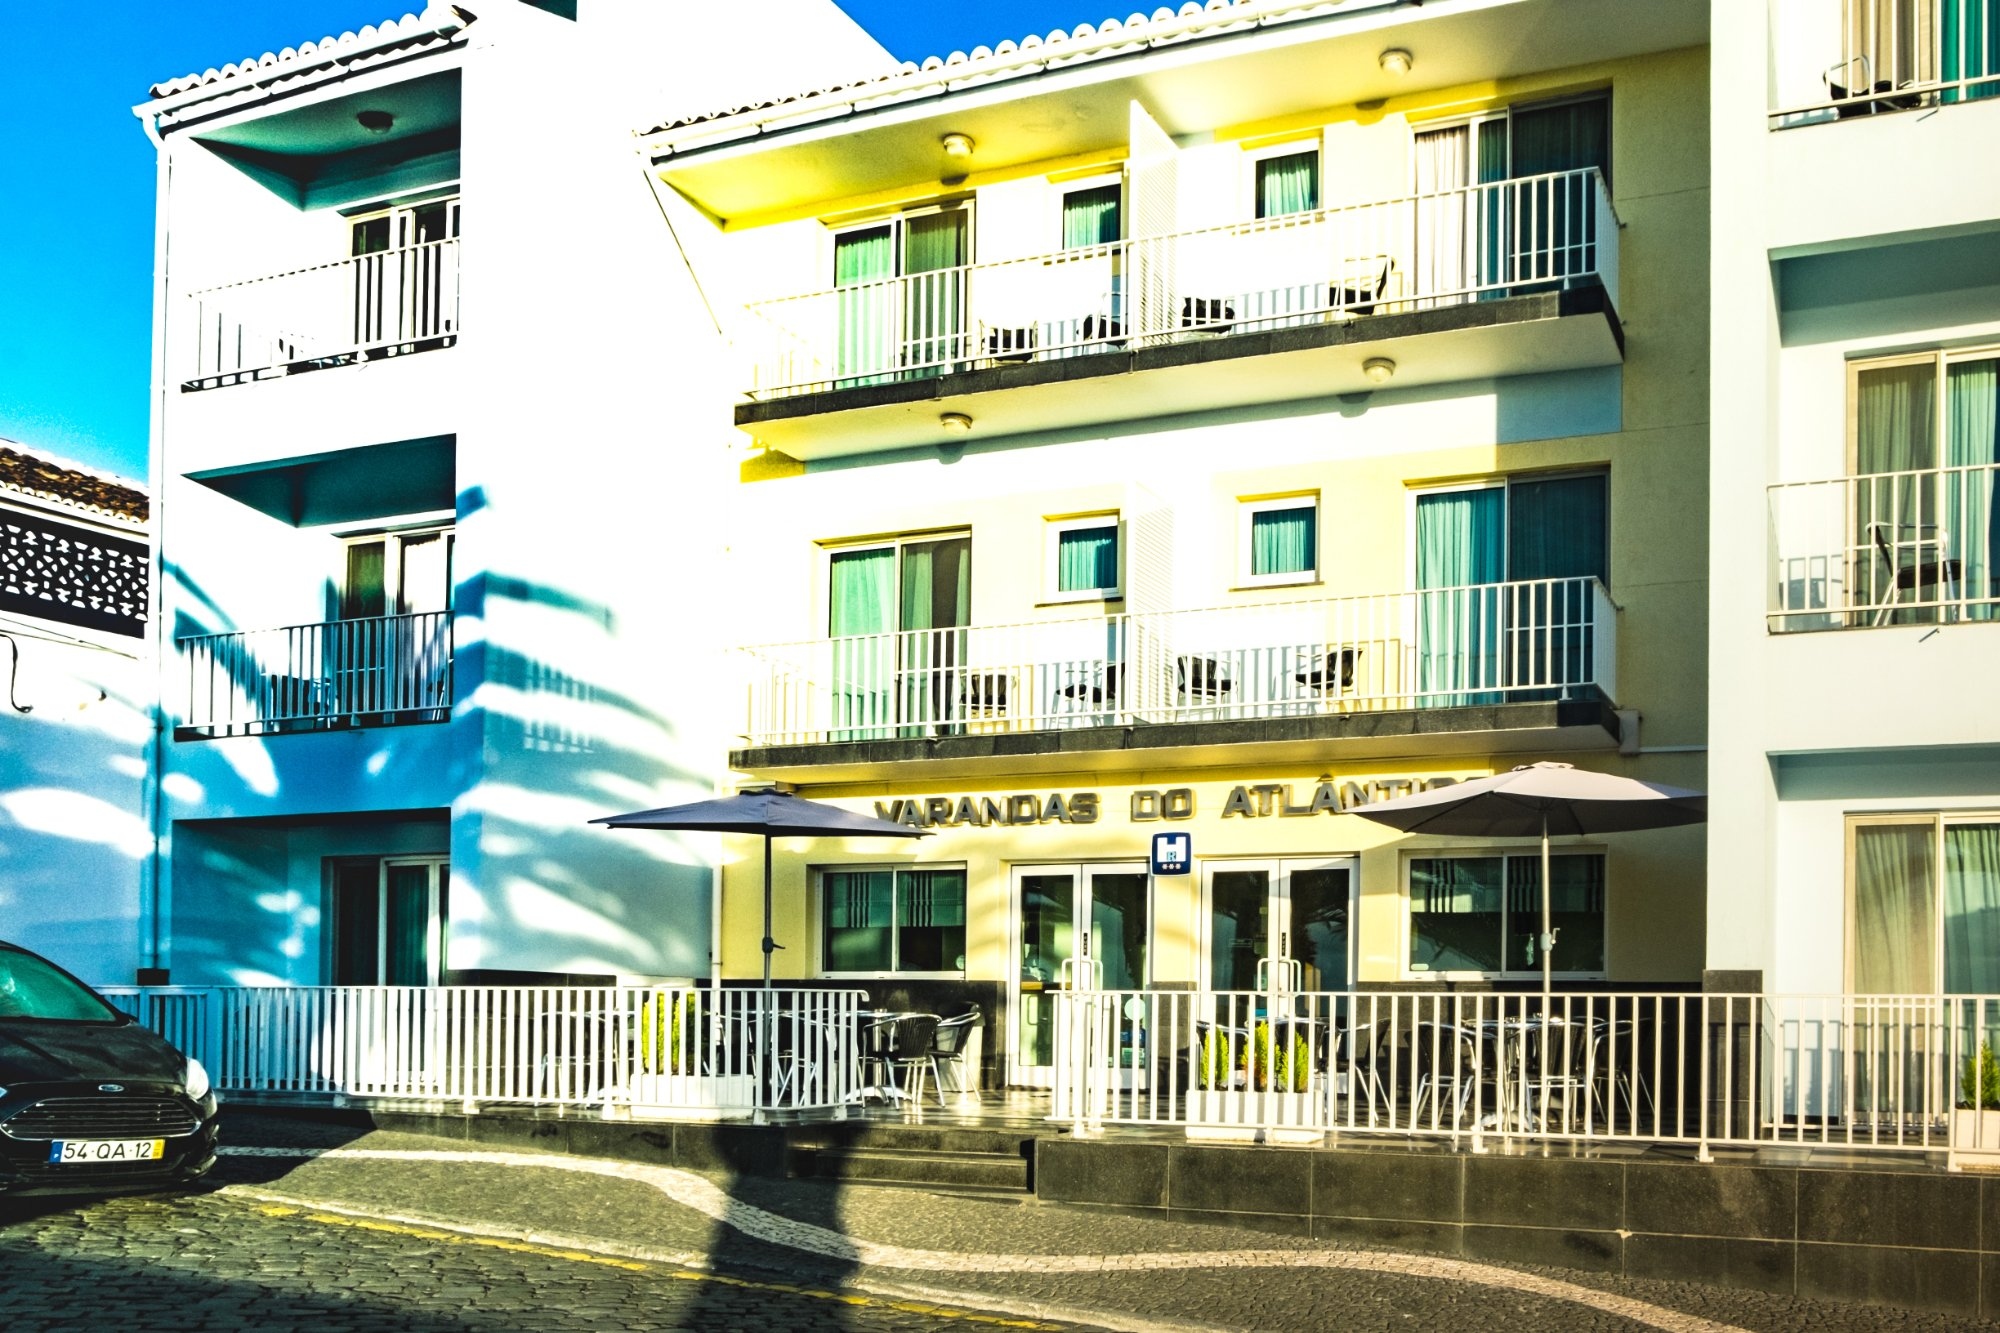 Hotel Varandas do Atlantico